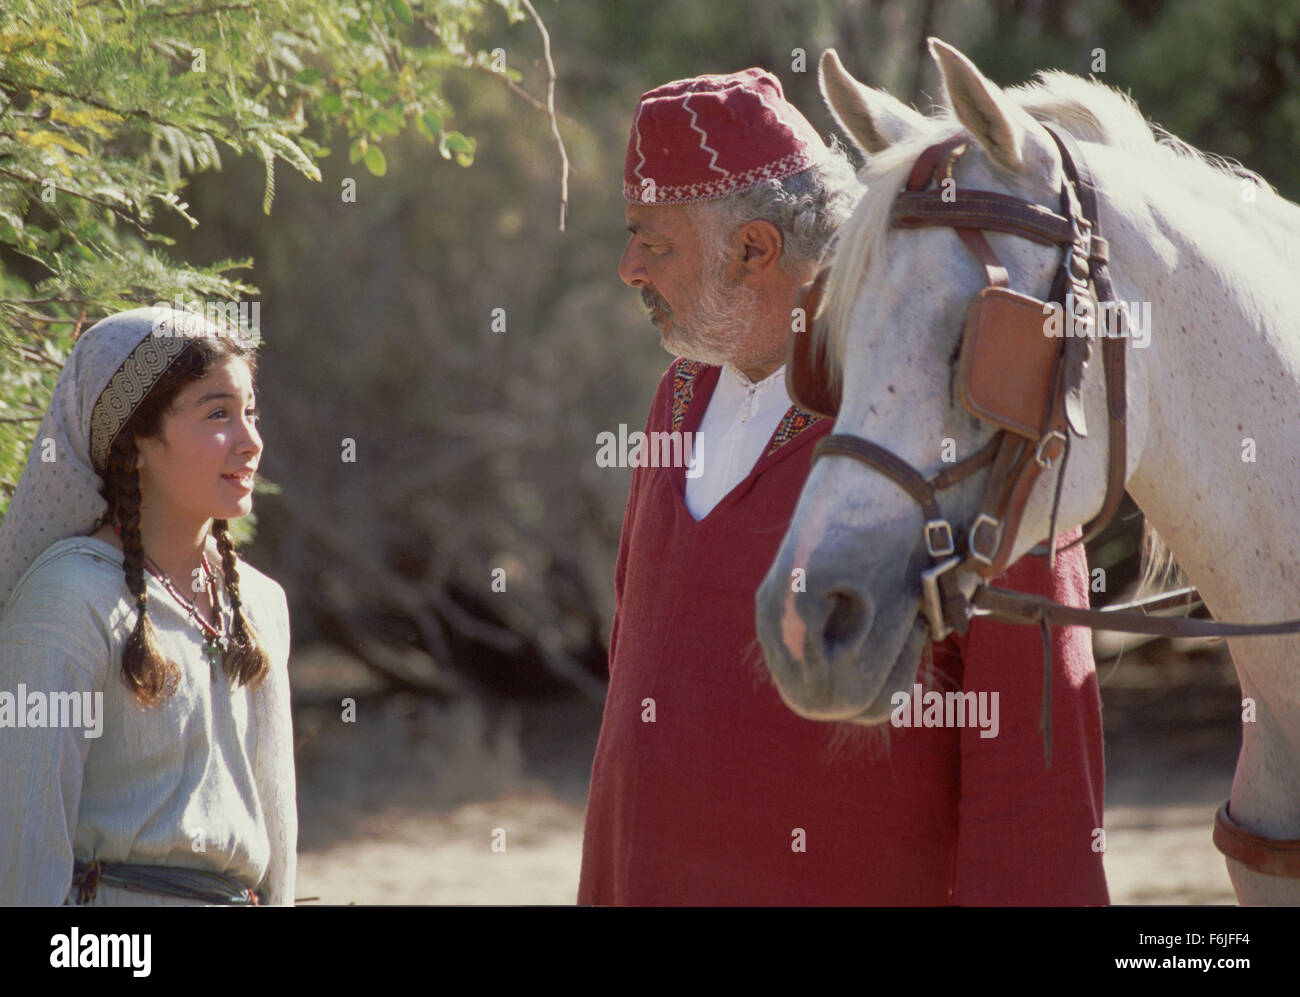 Dec 07, 2003; Hollywood, CA, USA; Actress BIANA TAMIMI stars as Neera and RICHARD ROMANUS as Ben in the Walt Disney - Stock Image